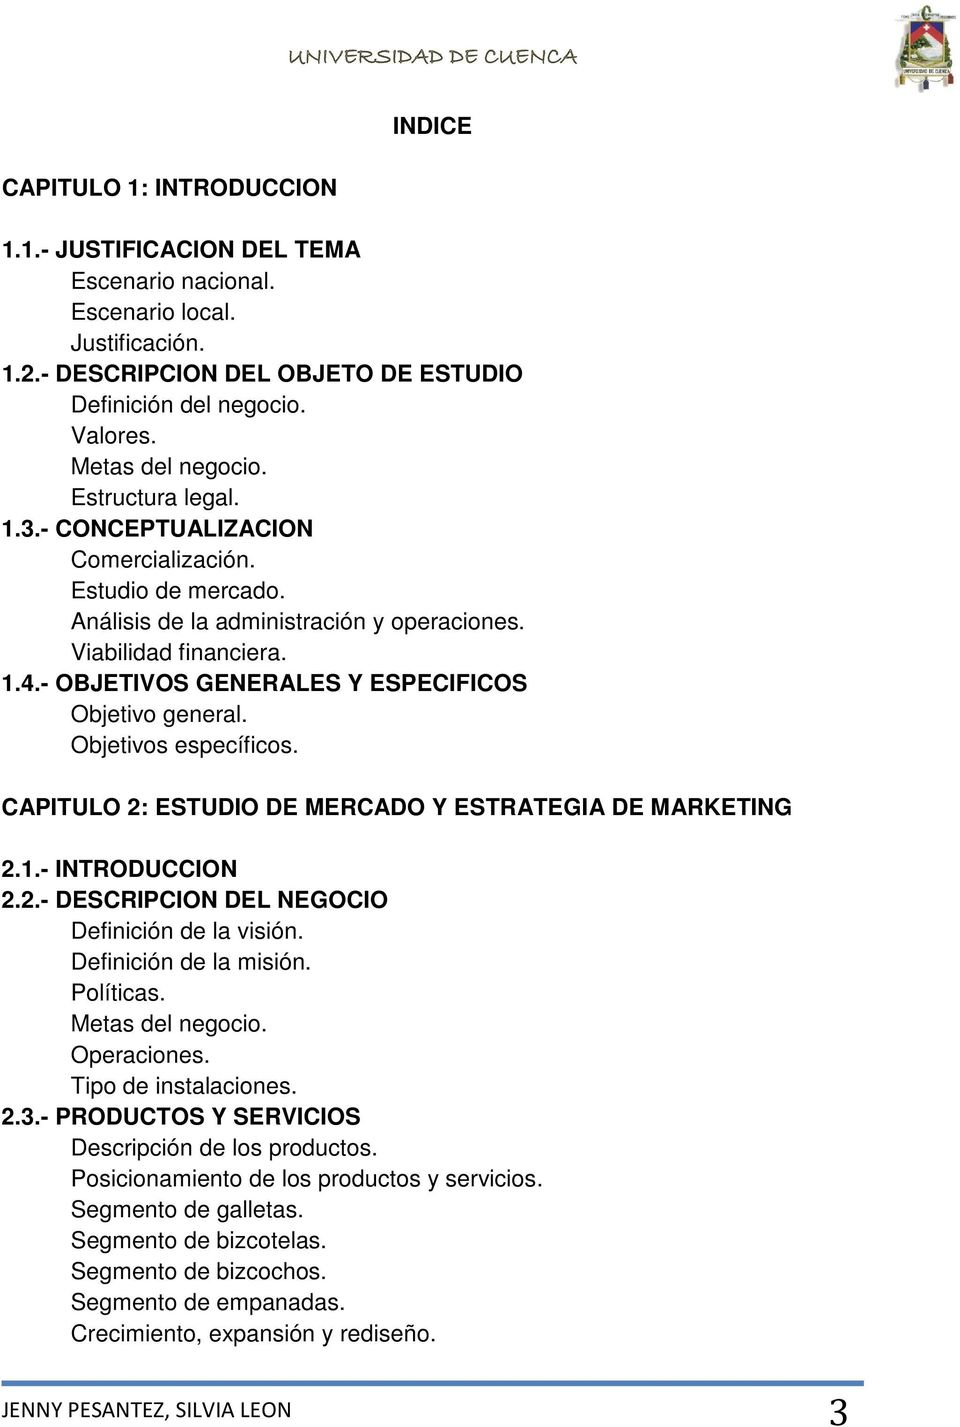 - OBJETIVOS GENERALES Y ESPECIFICOS Objetivo general. Objetivos específicos. CAPITULO 2: ESTUDIO DE MERCADO Y ESTRATEGIA DE MARKETING 2.1.- INTRODUCCION 2.2.- DESCRIPCION DEL NEGOCIO Definición de la visión.